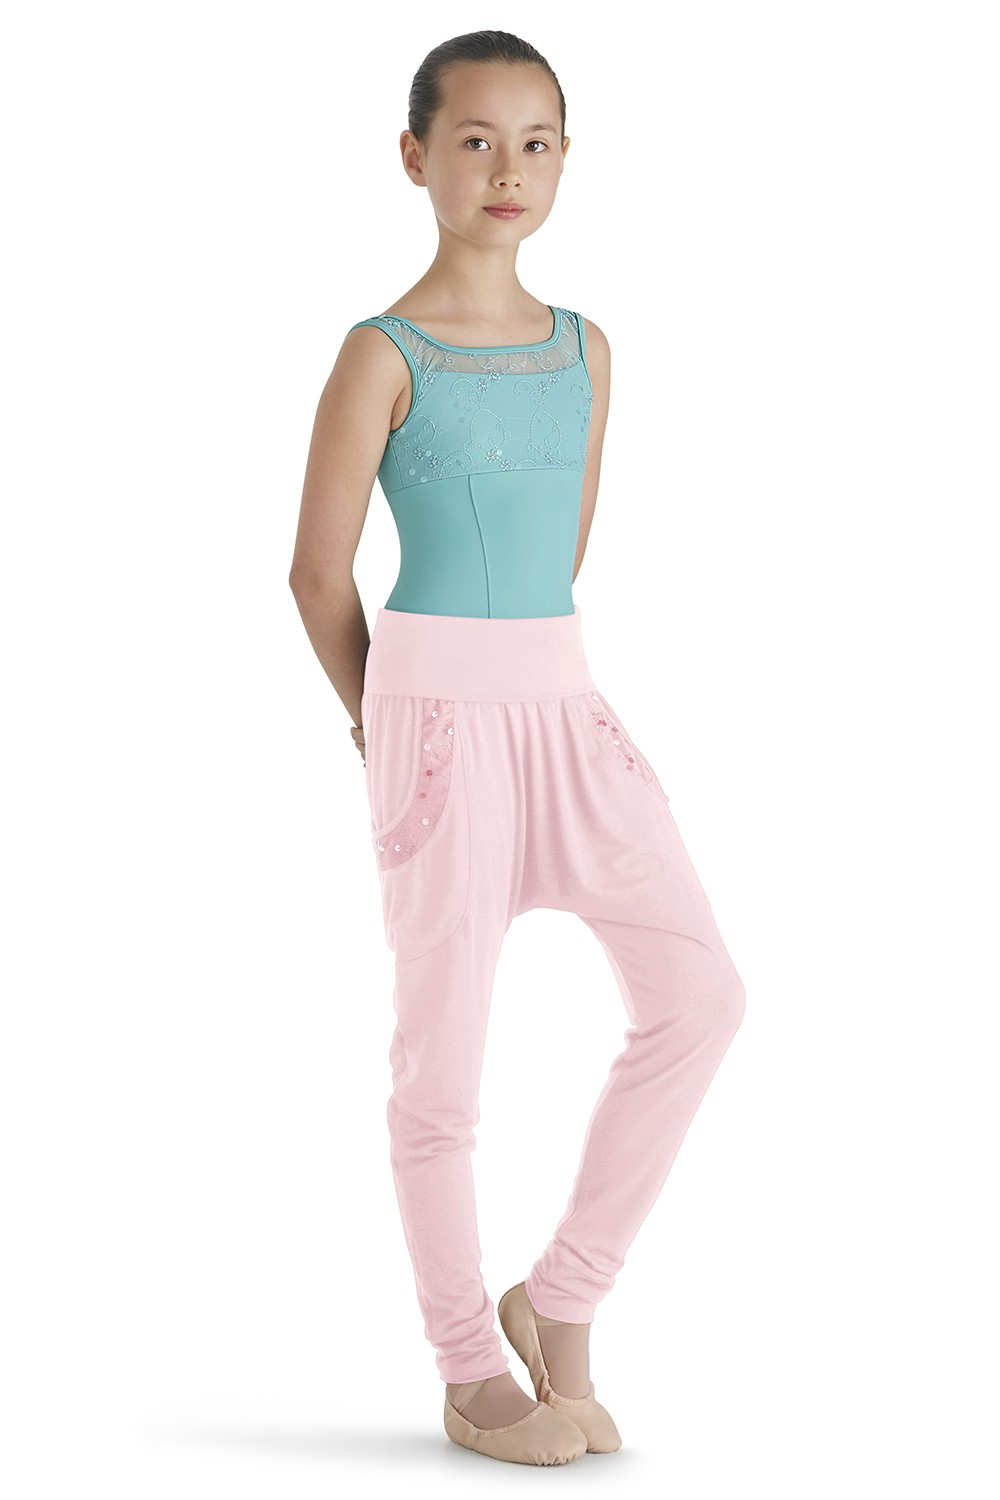 Alby Children's Dance Pants